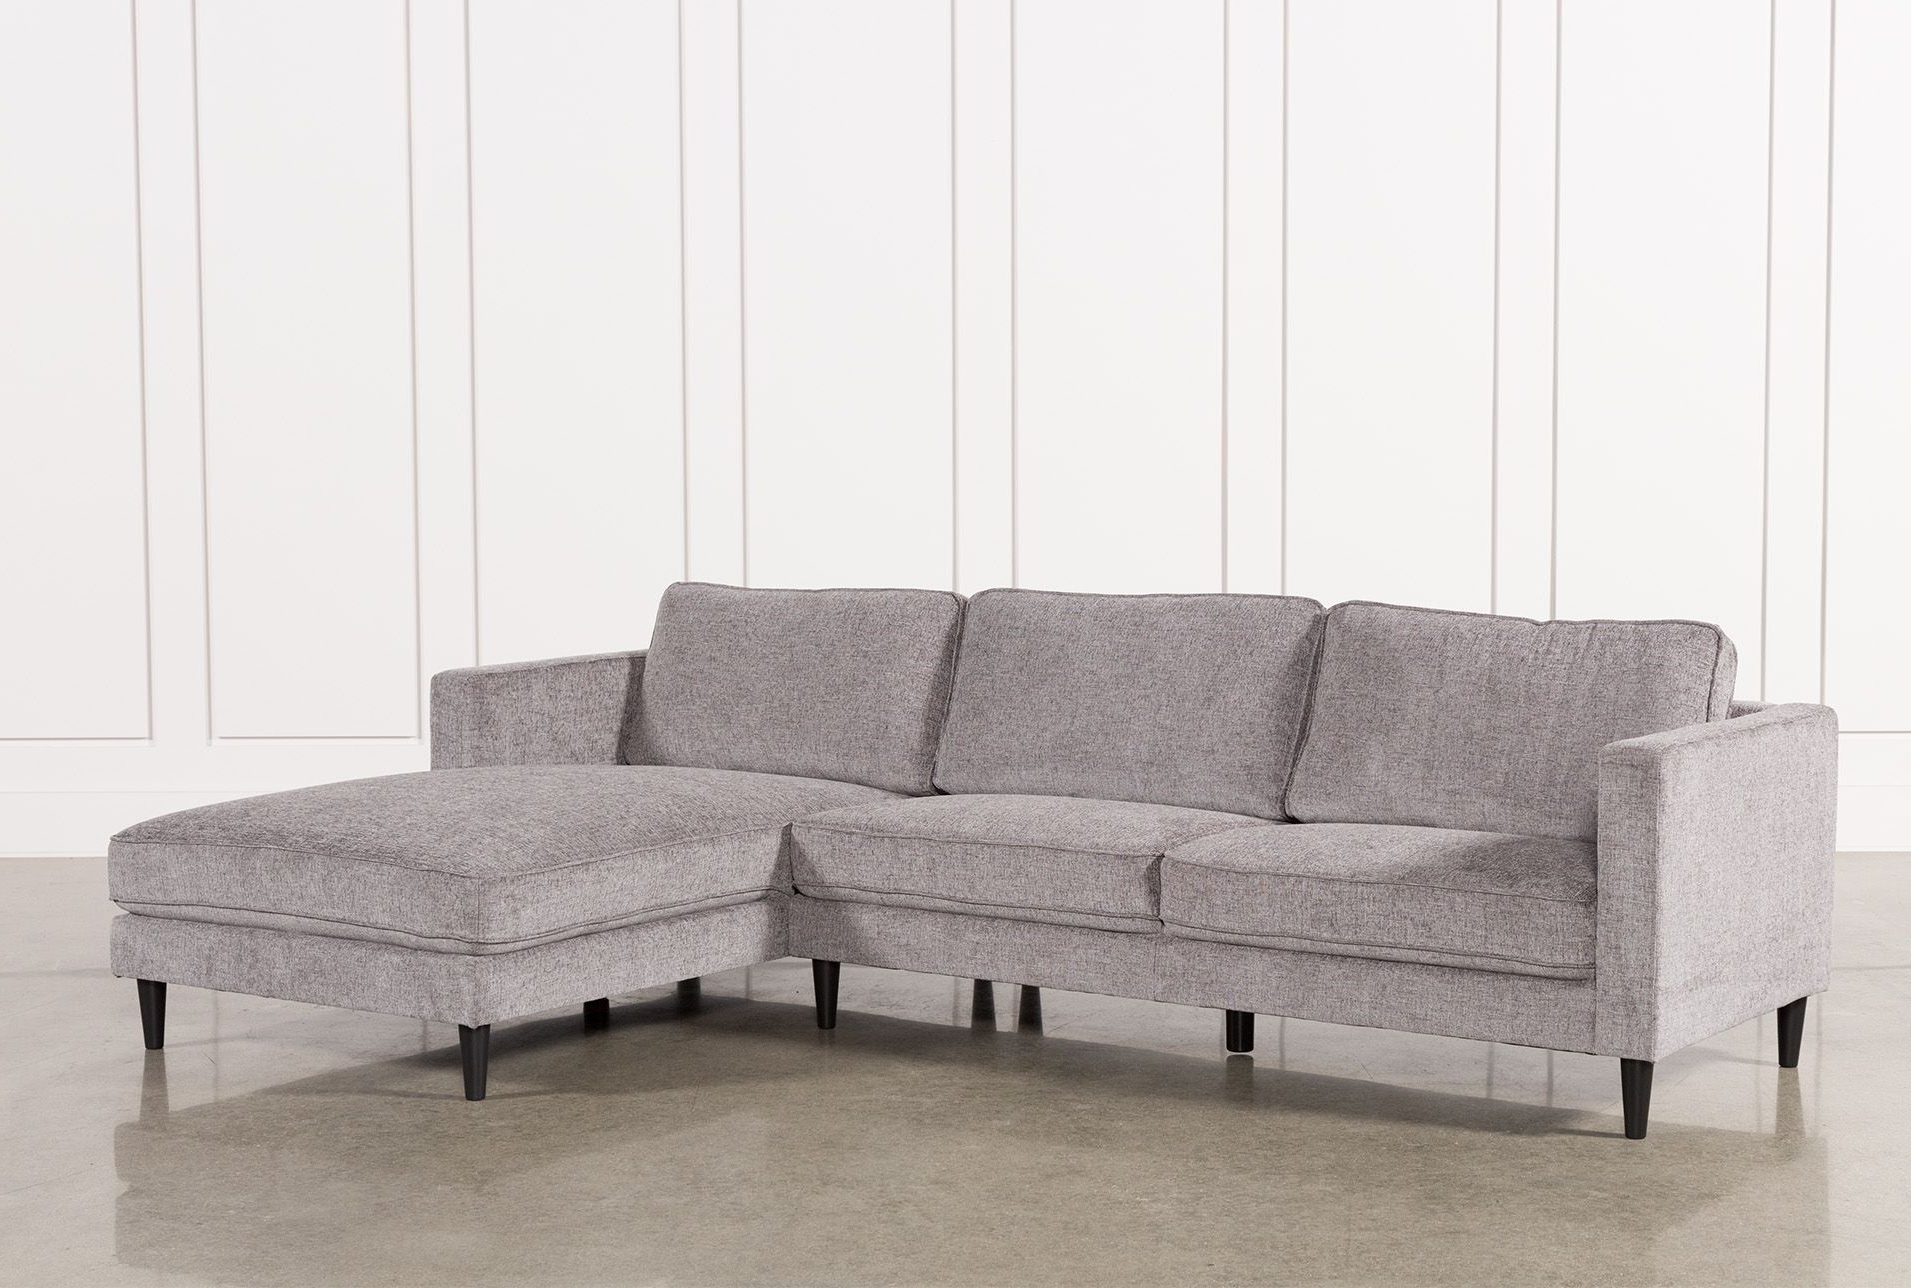 Preferred Lucy Grey 2 Piece Sectionals With Raf Chaise Regarding Cosmos Grey 2 Piece Sectional W/raf Chaise In (View 20 of 20)